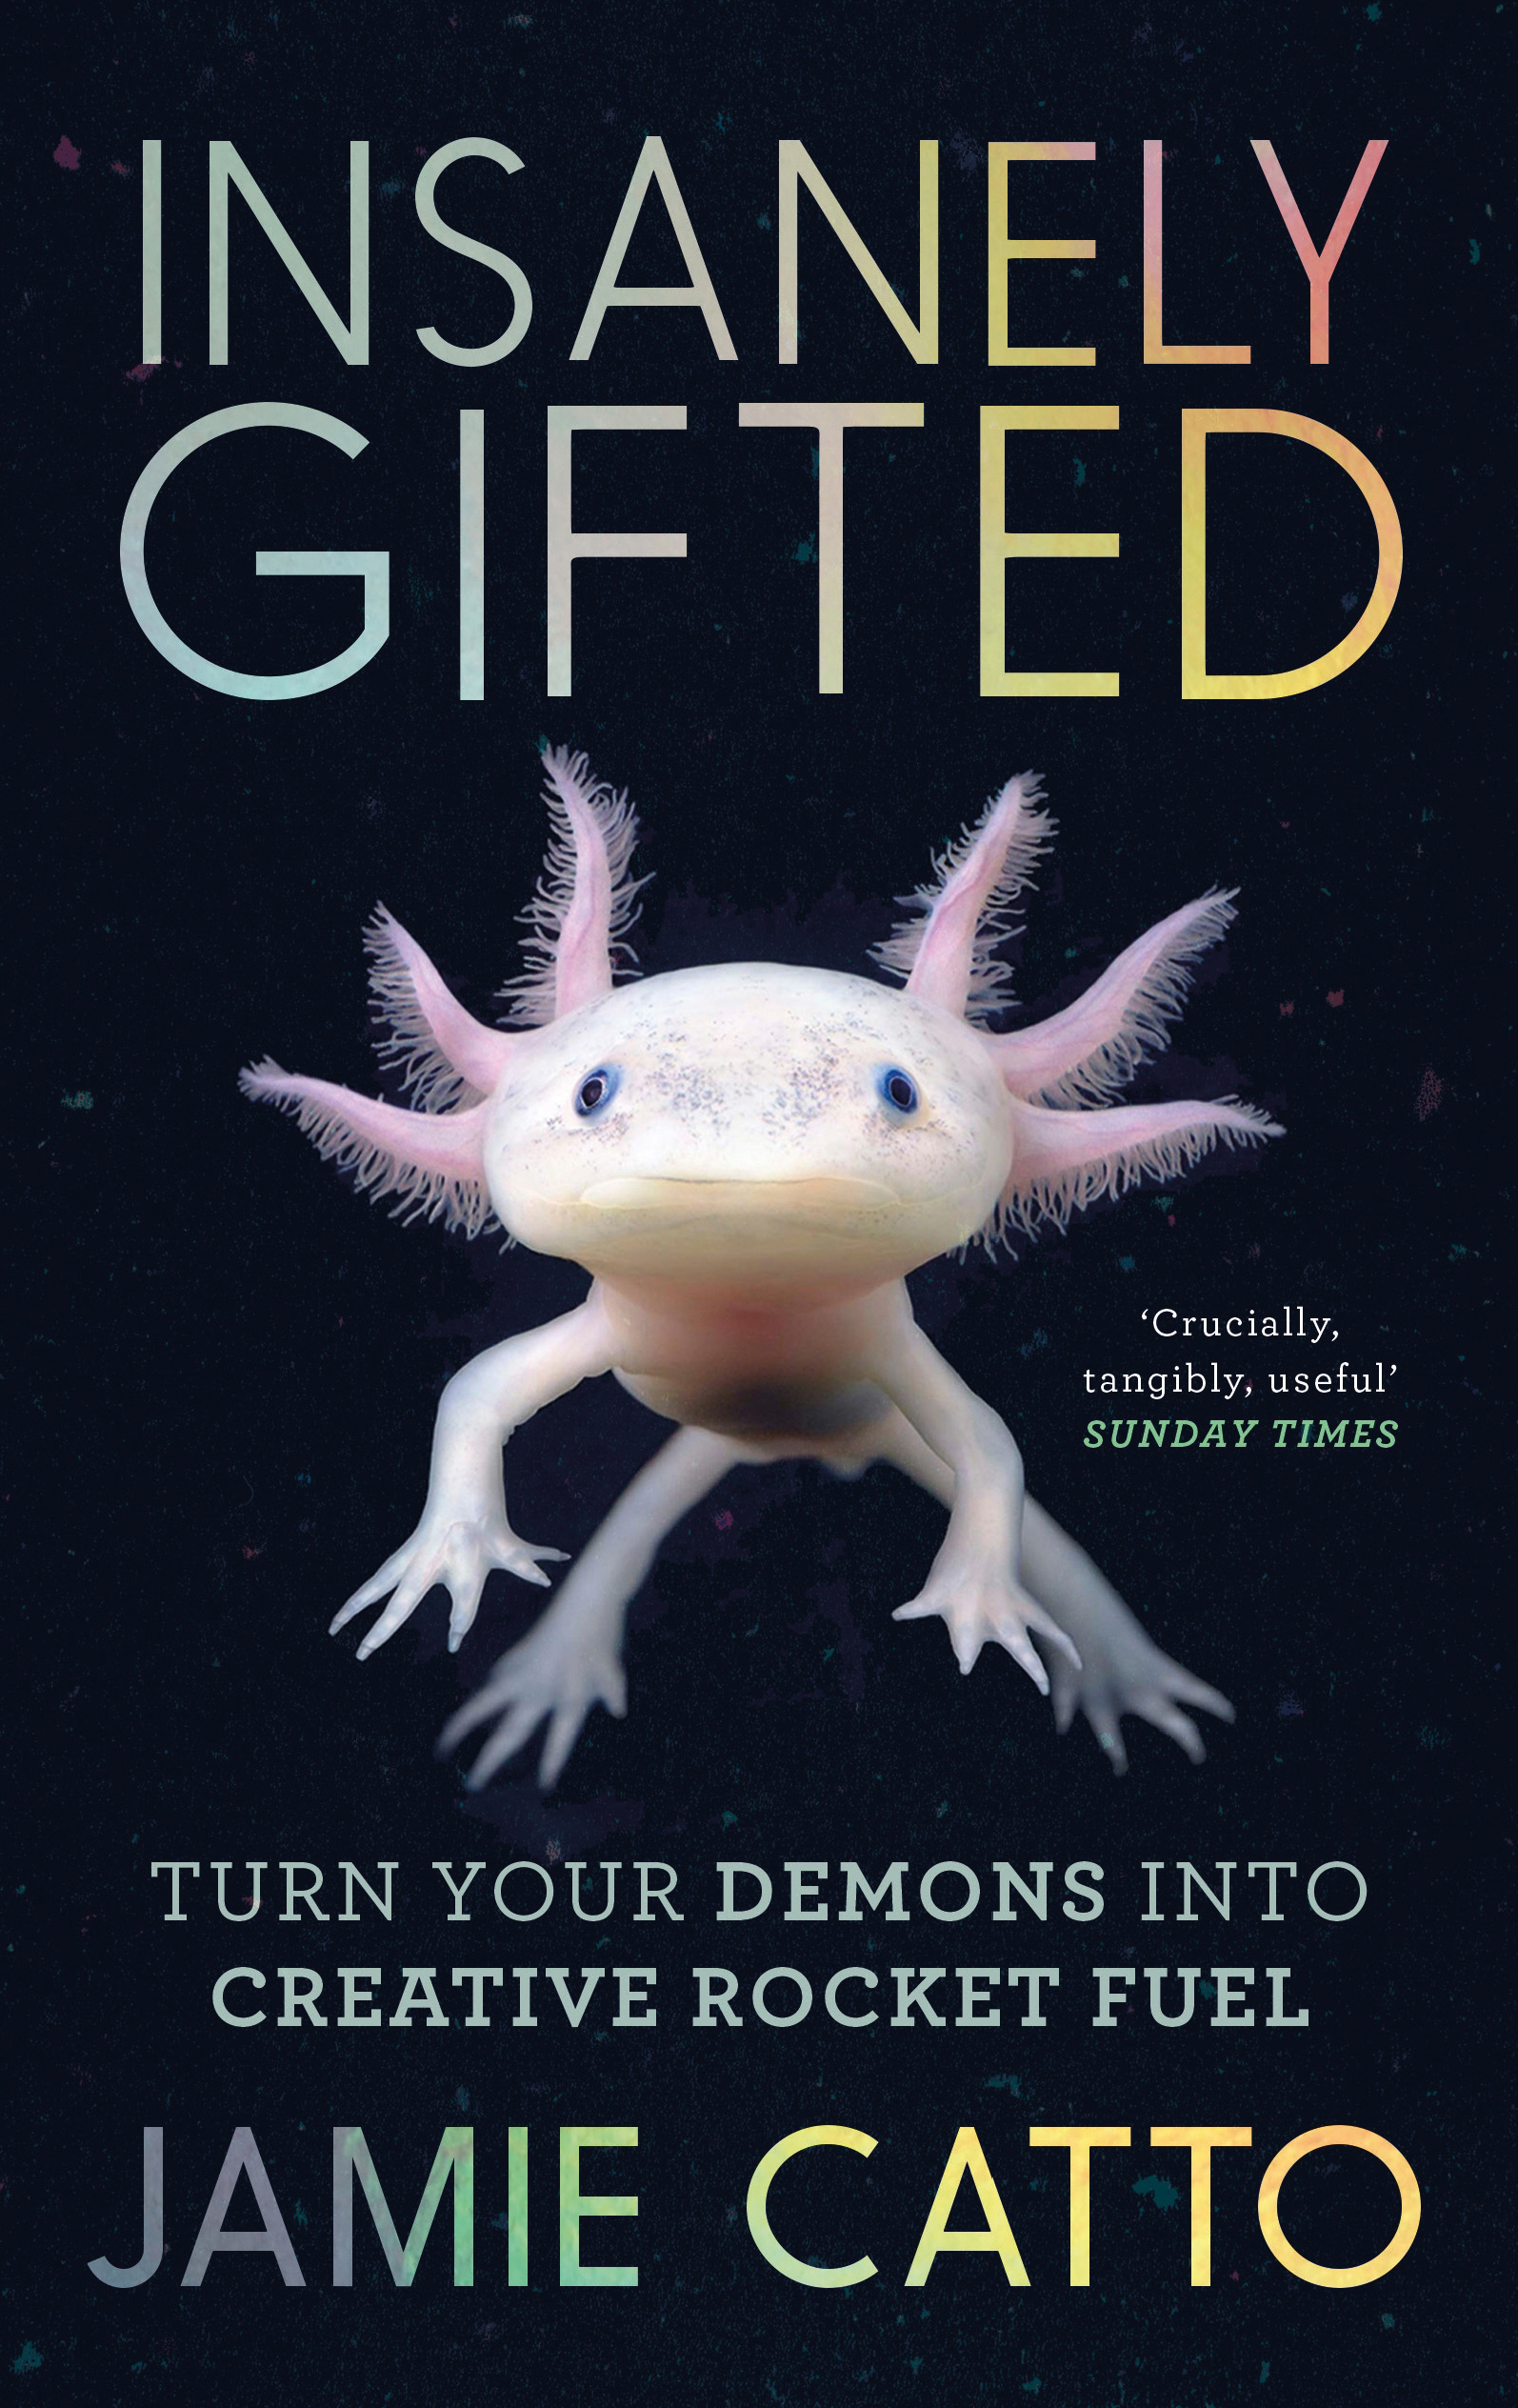 Insanely Gifted: Turn Your Demons into Creative Rocket Fuel by Jamie Catto, ISBN: 9781782118039